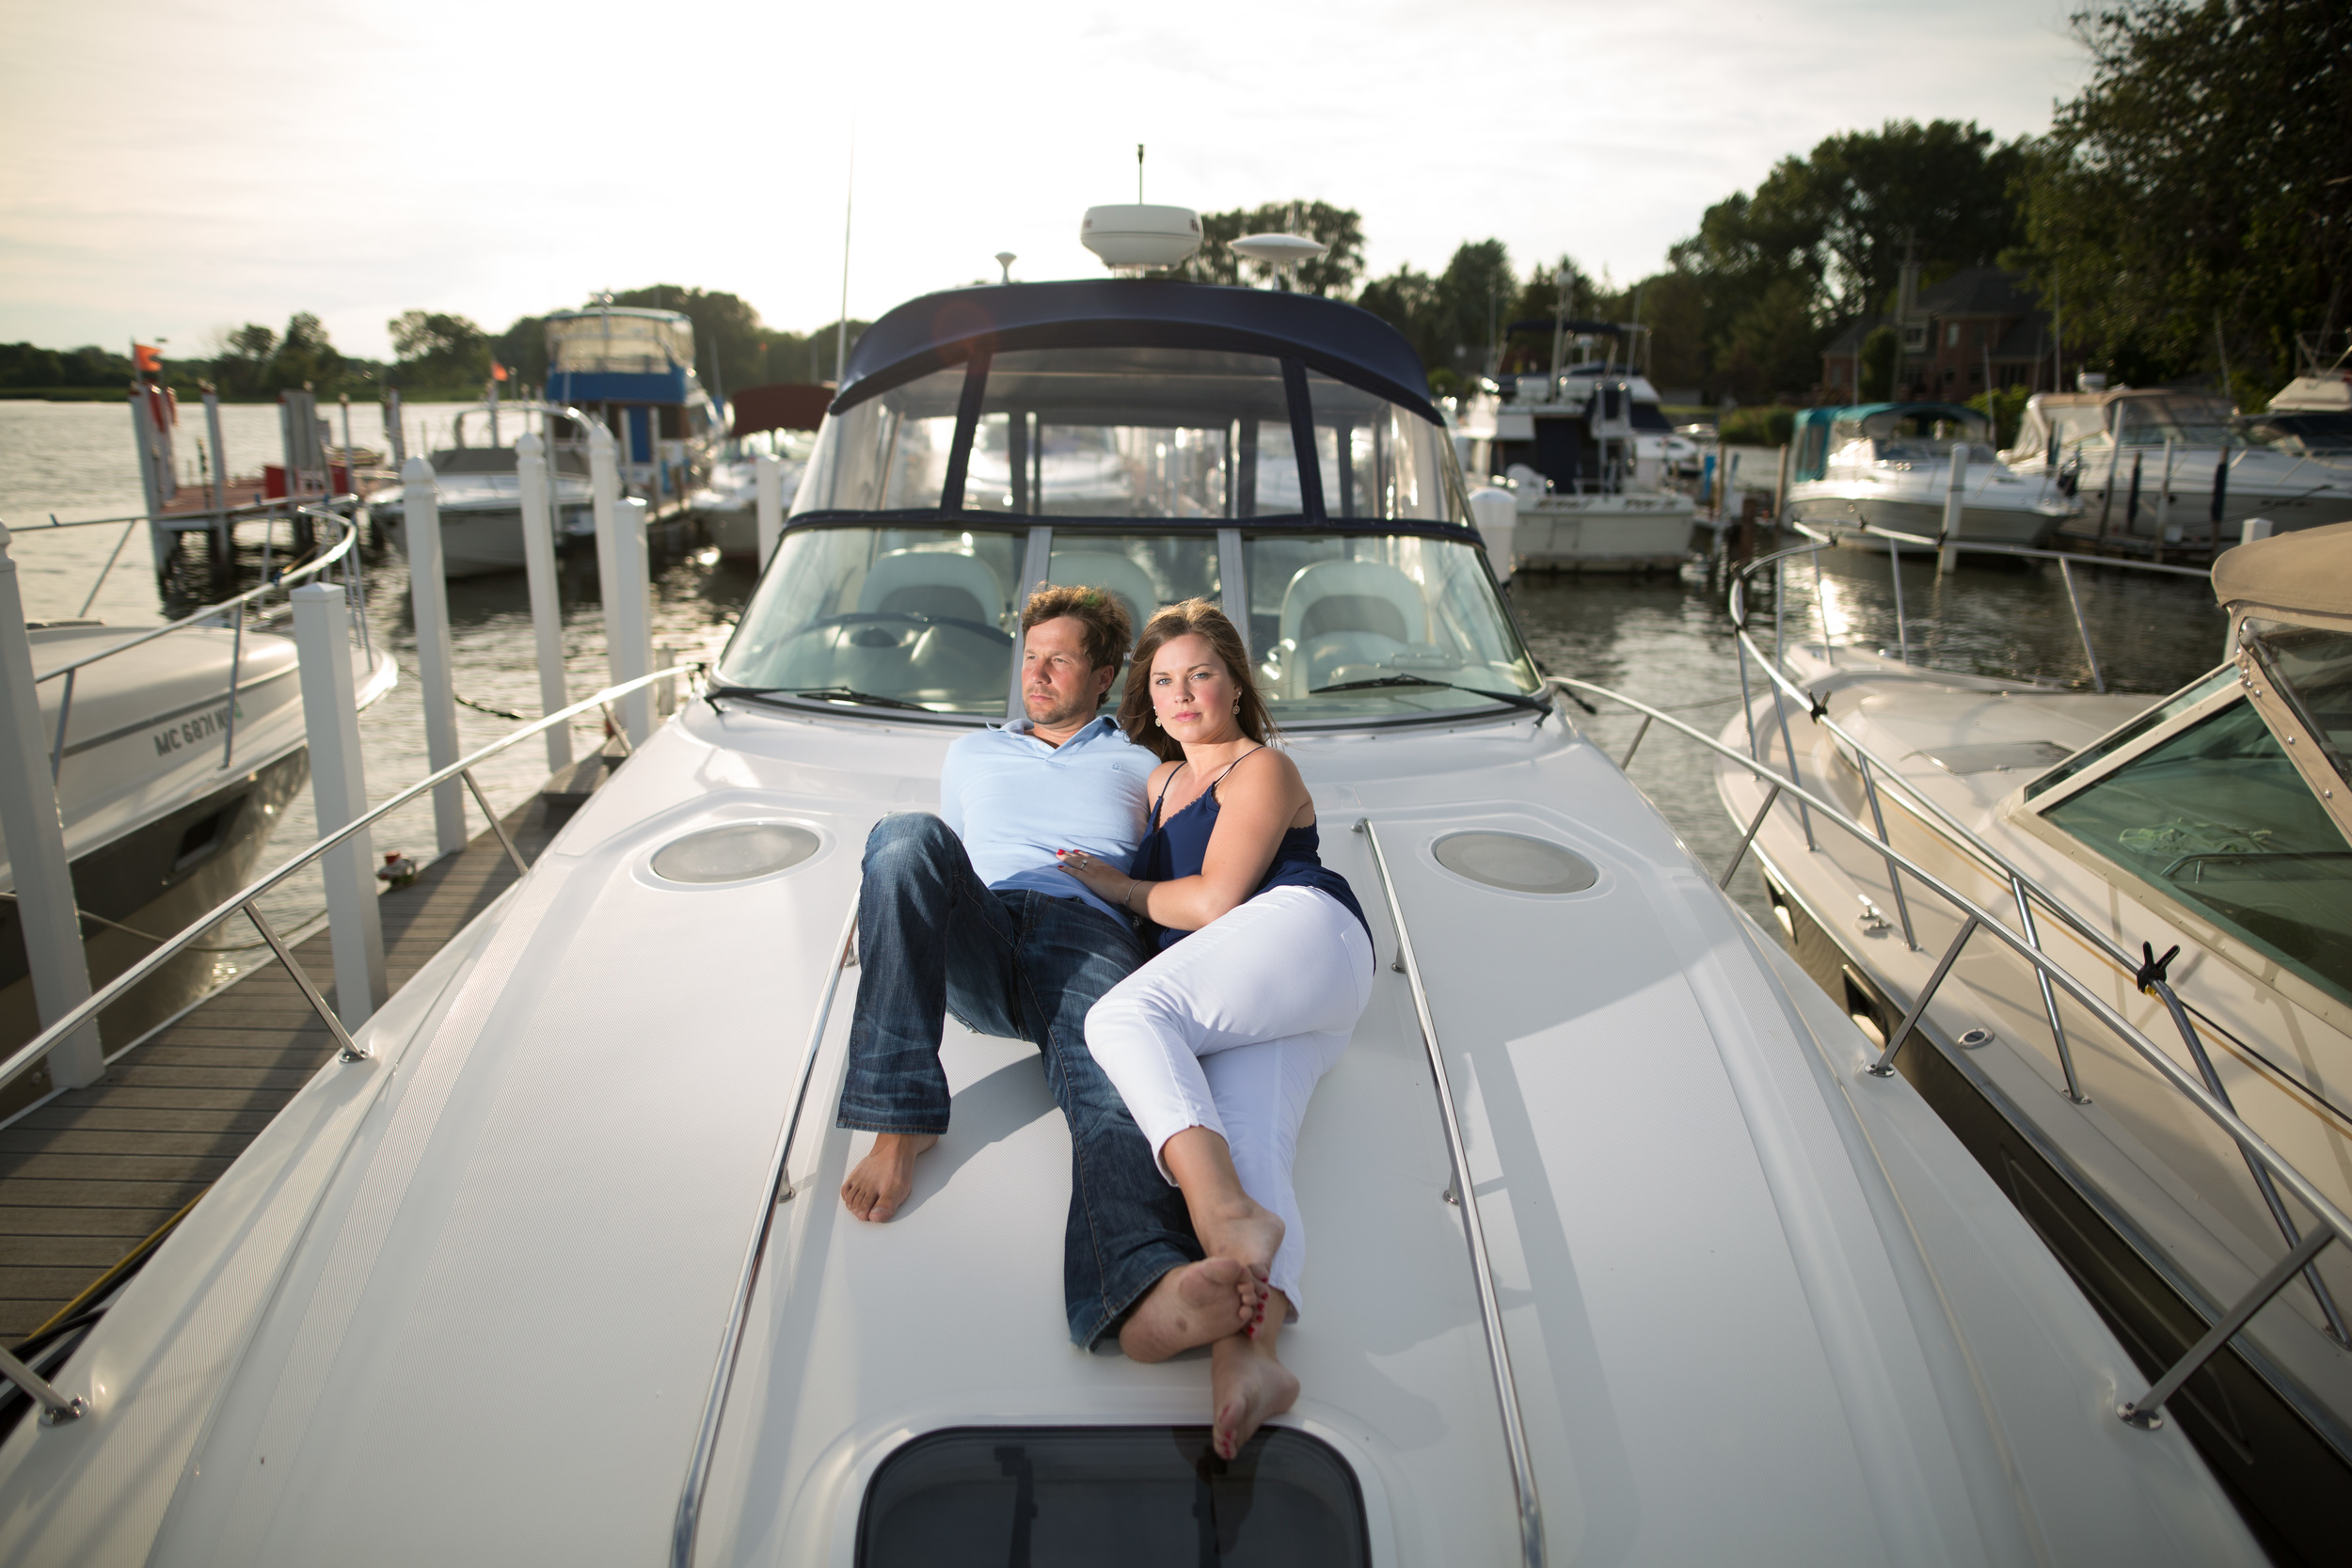 Nautical engagement session on a boat in Lake Erie.